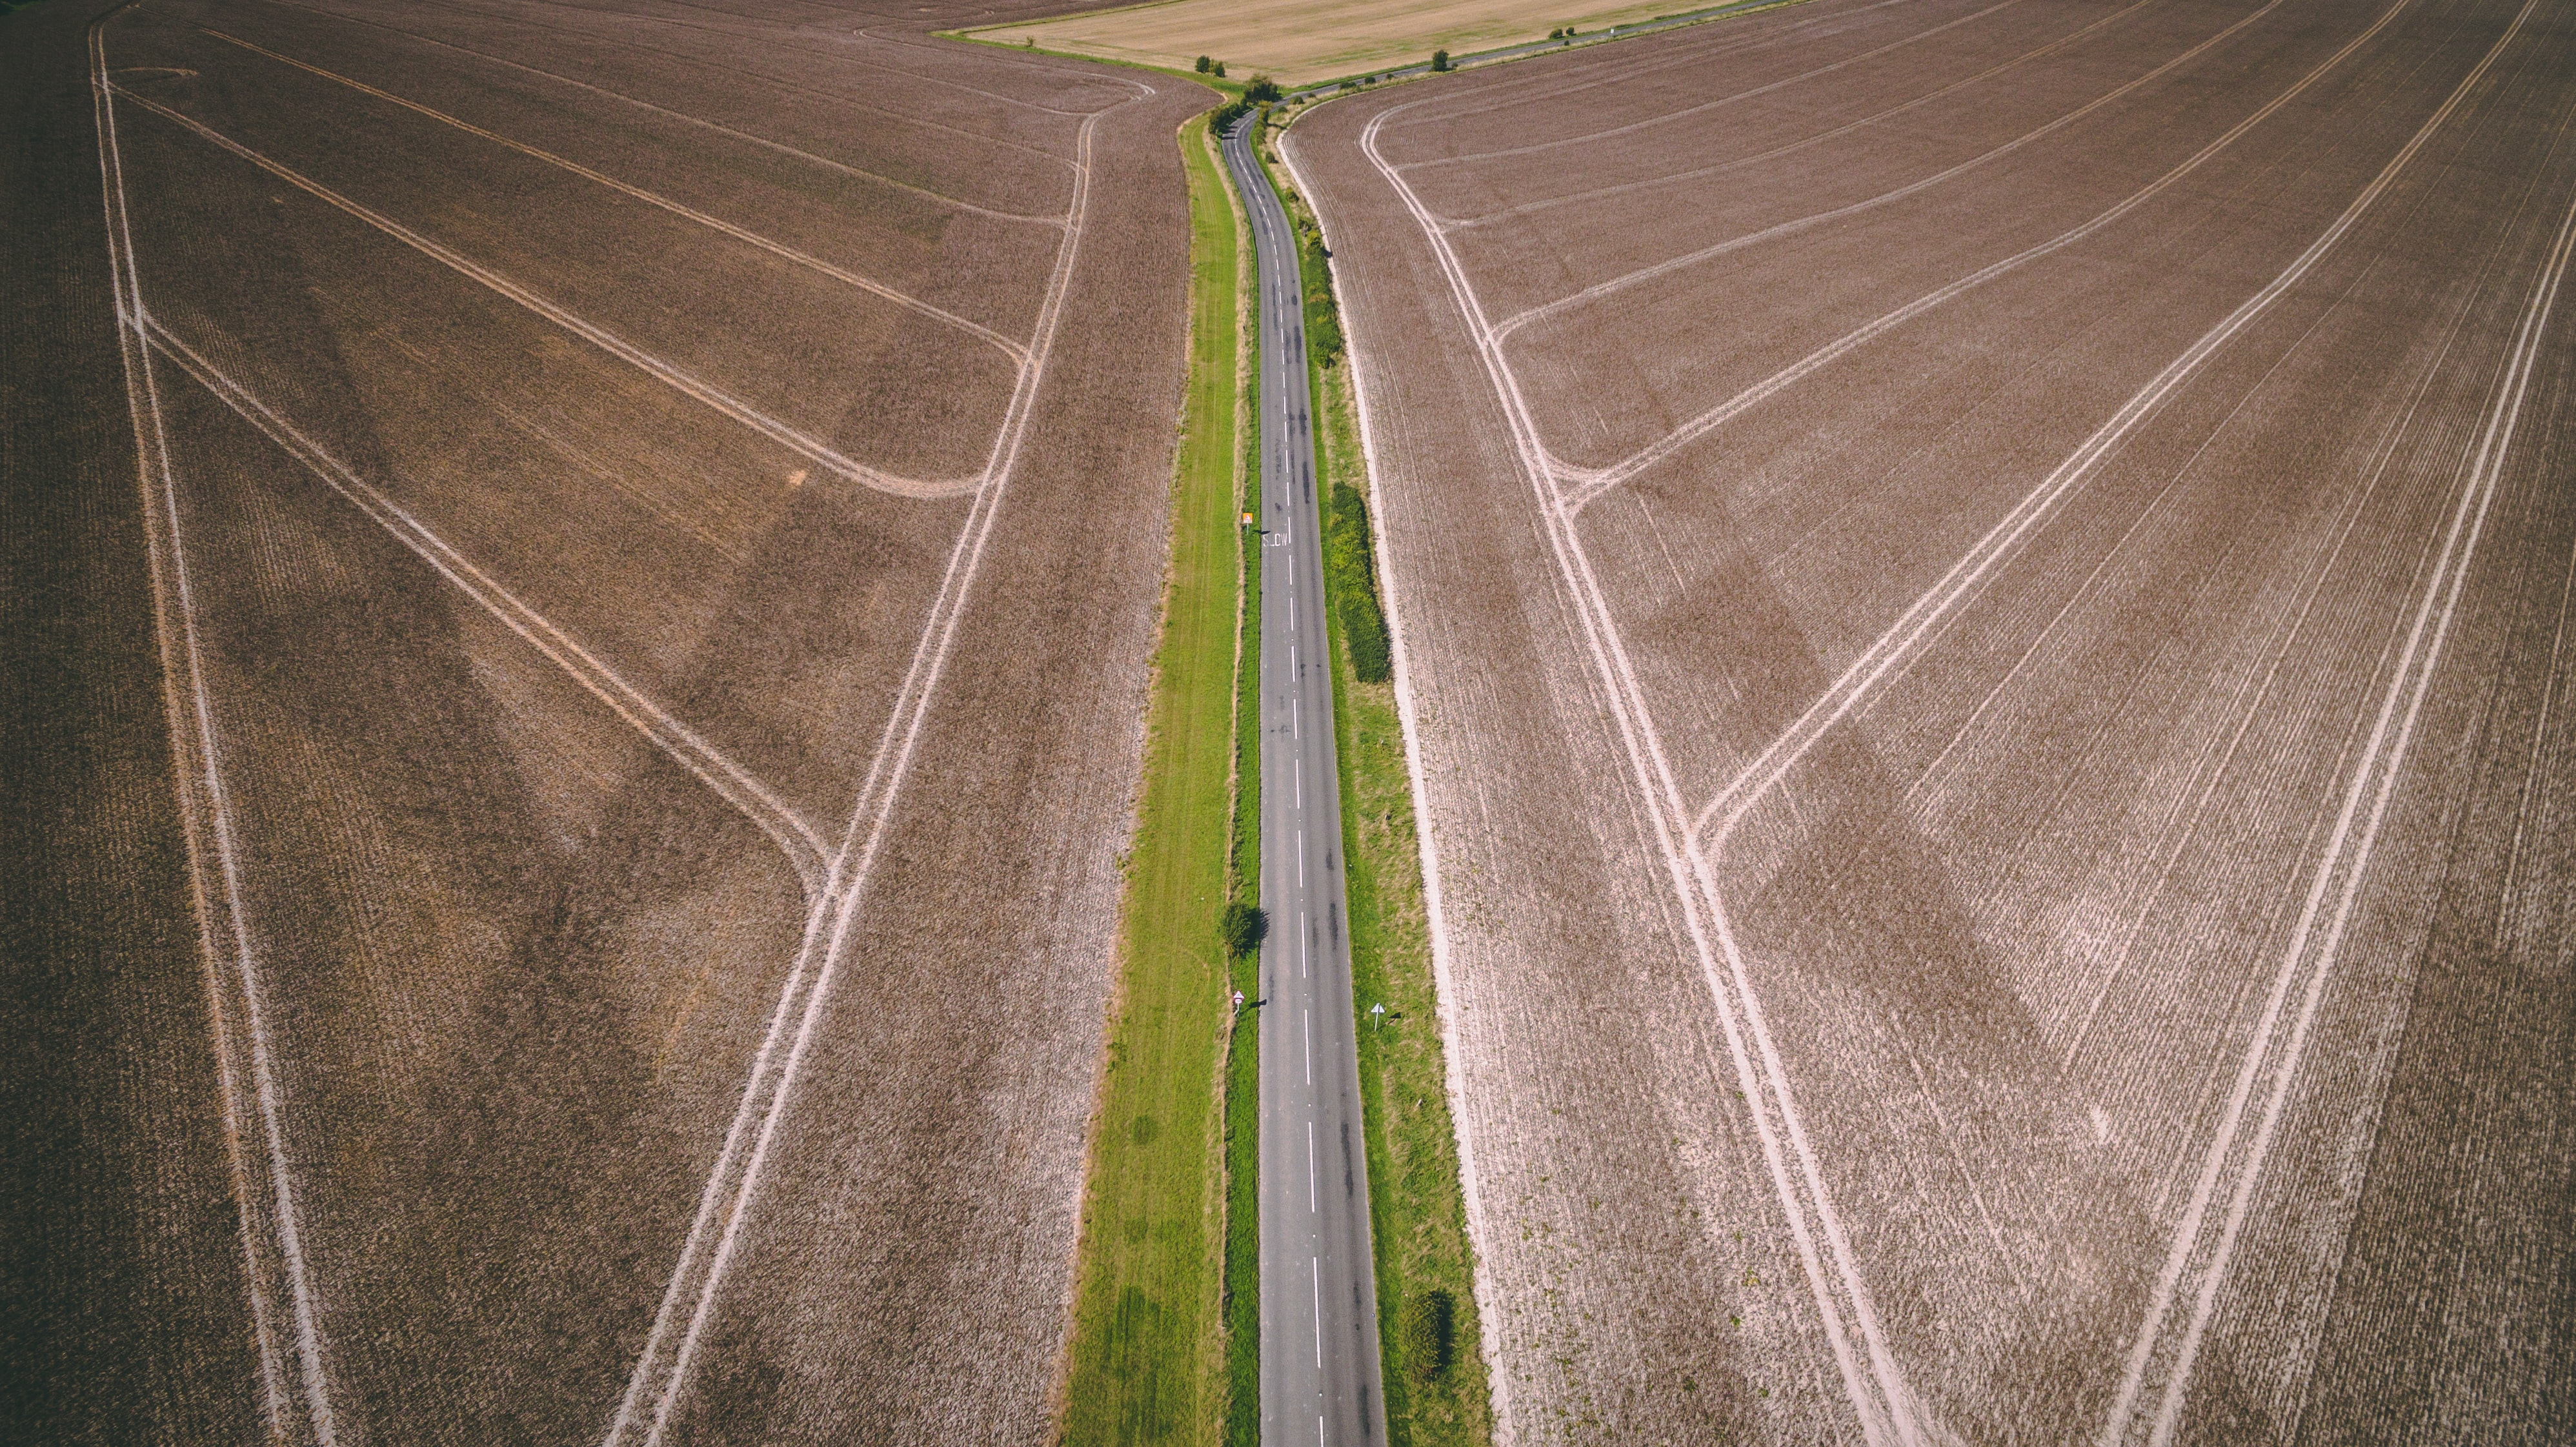 aerial photography of gray concrete road top between brown field during daytime